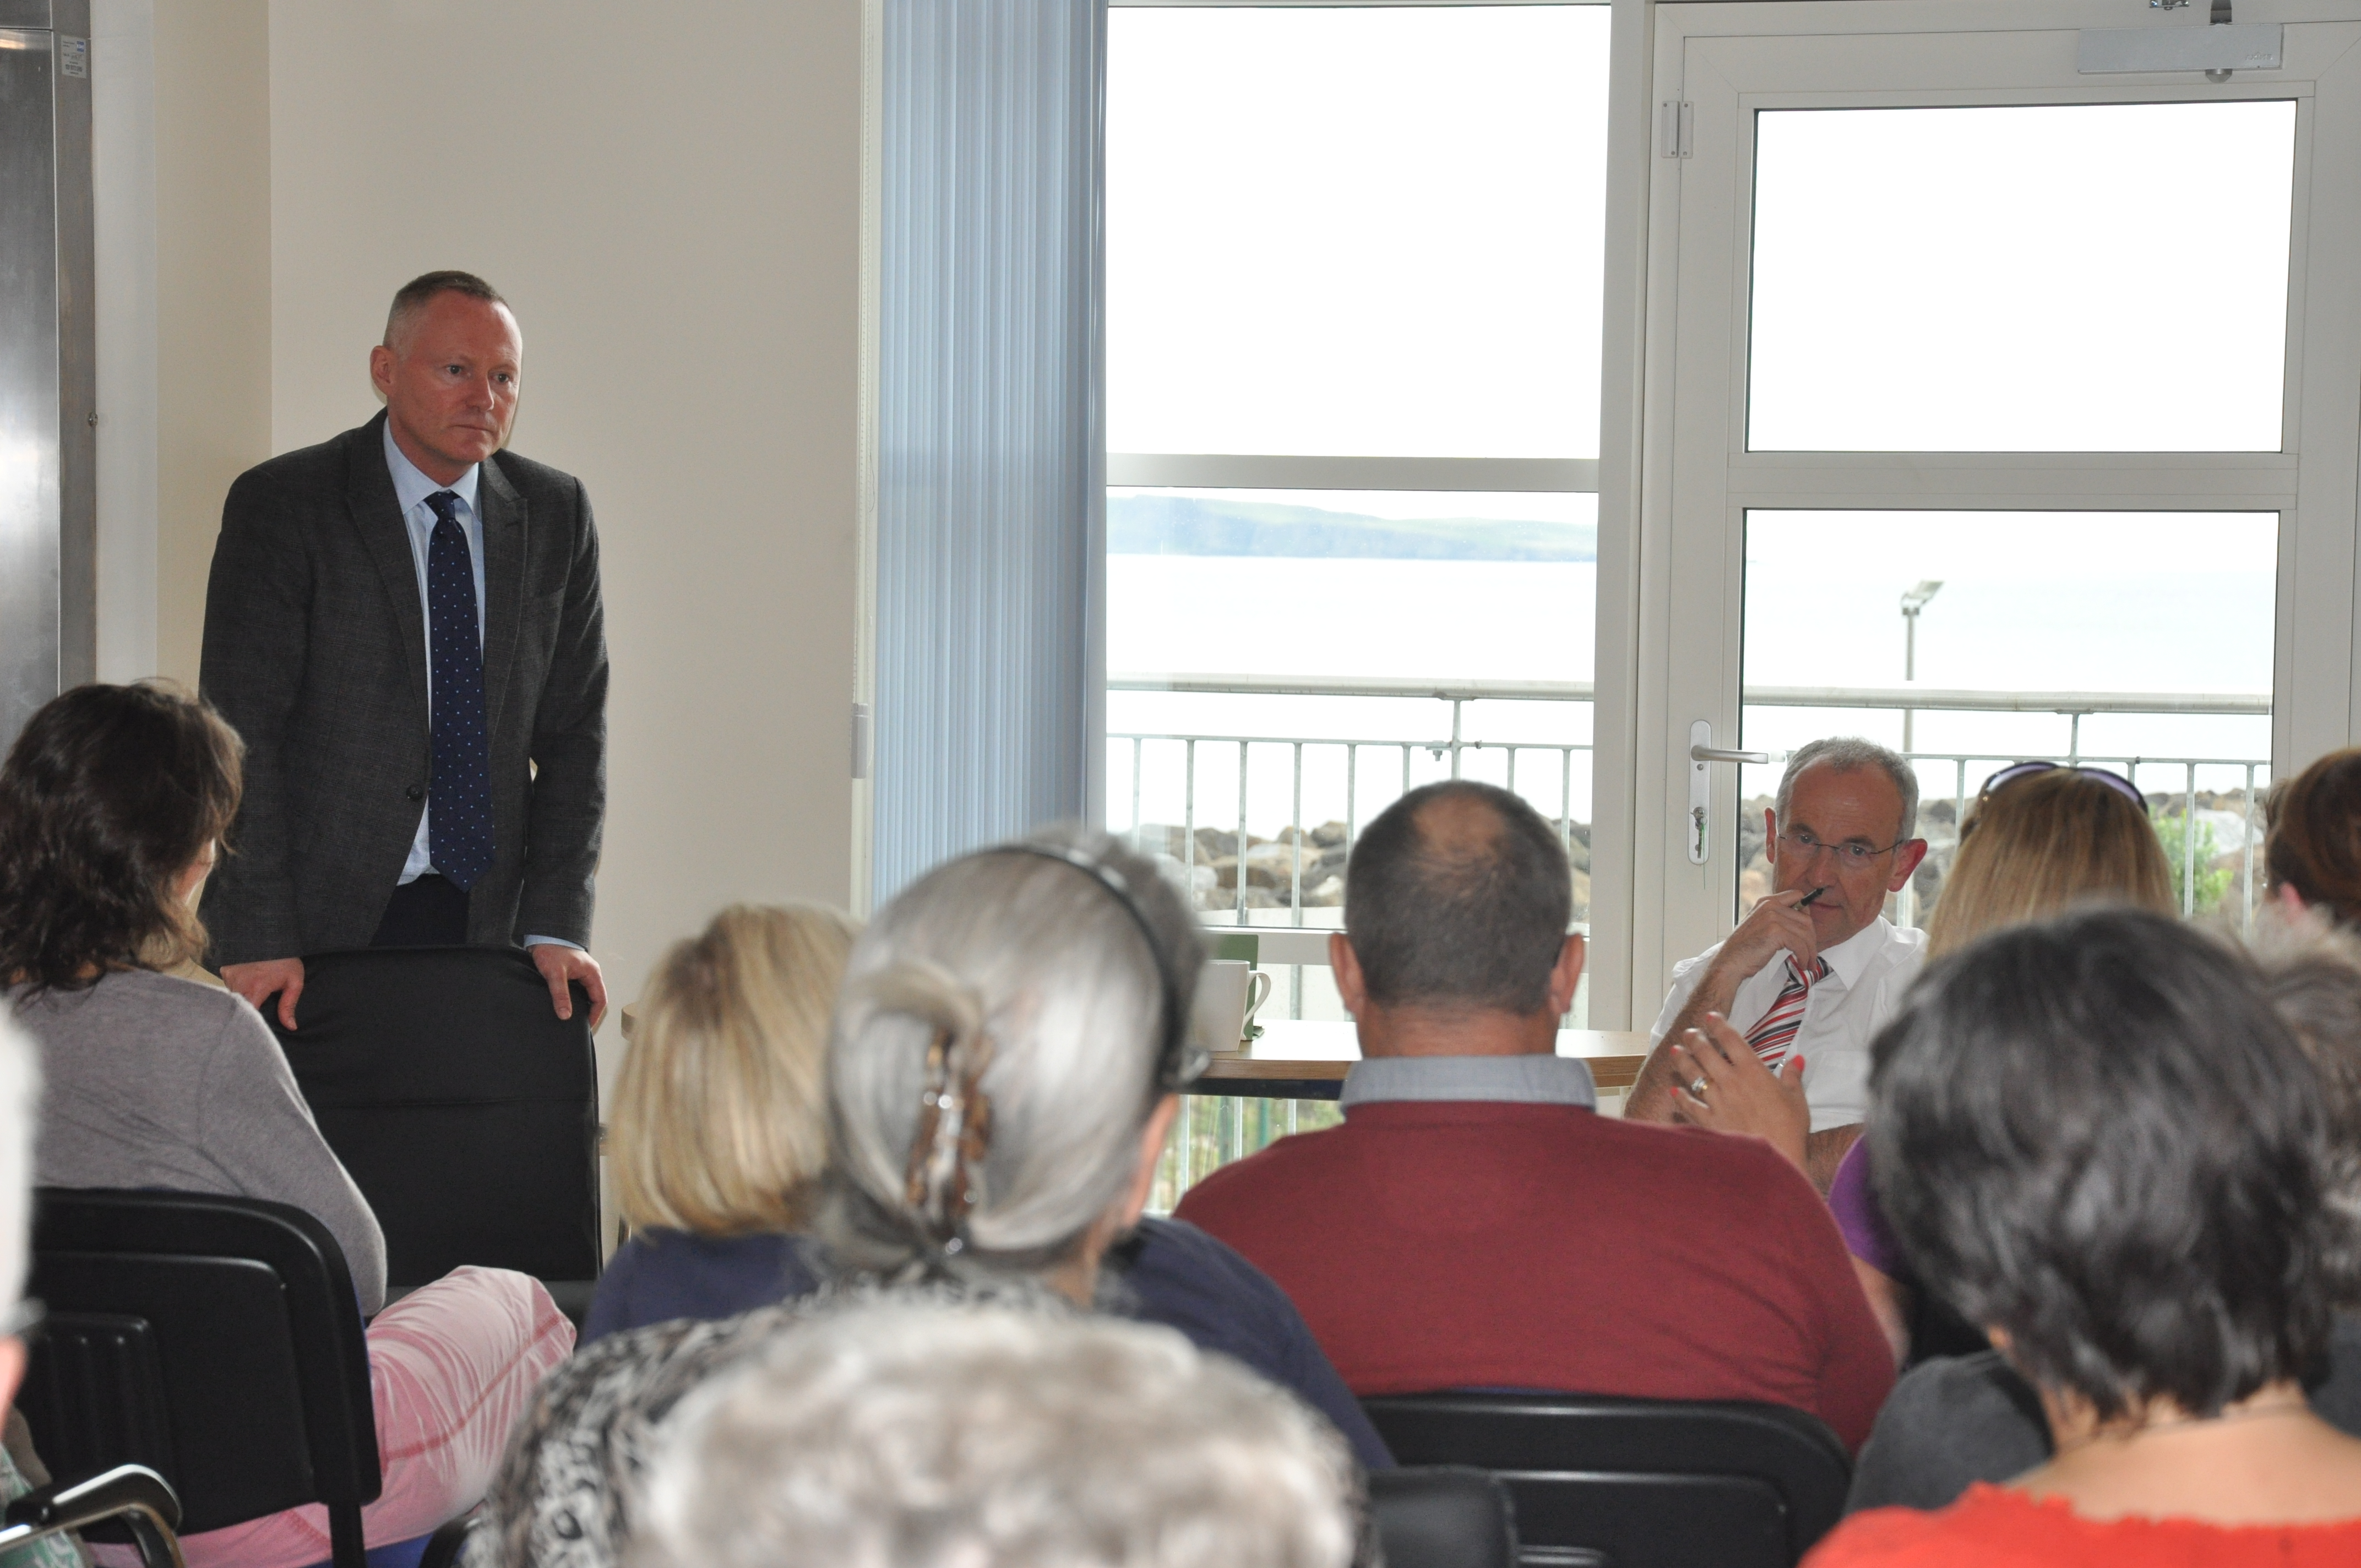 Chief Commissioner Michael OFlaherty at Ballycastle public meeting